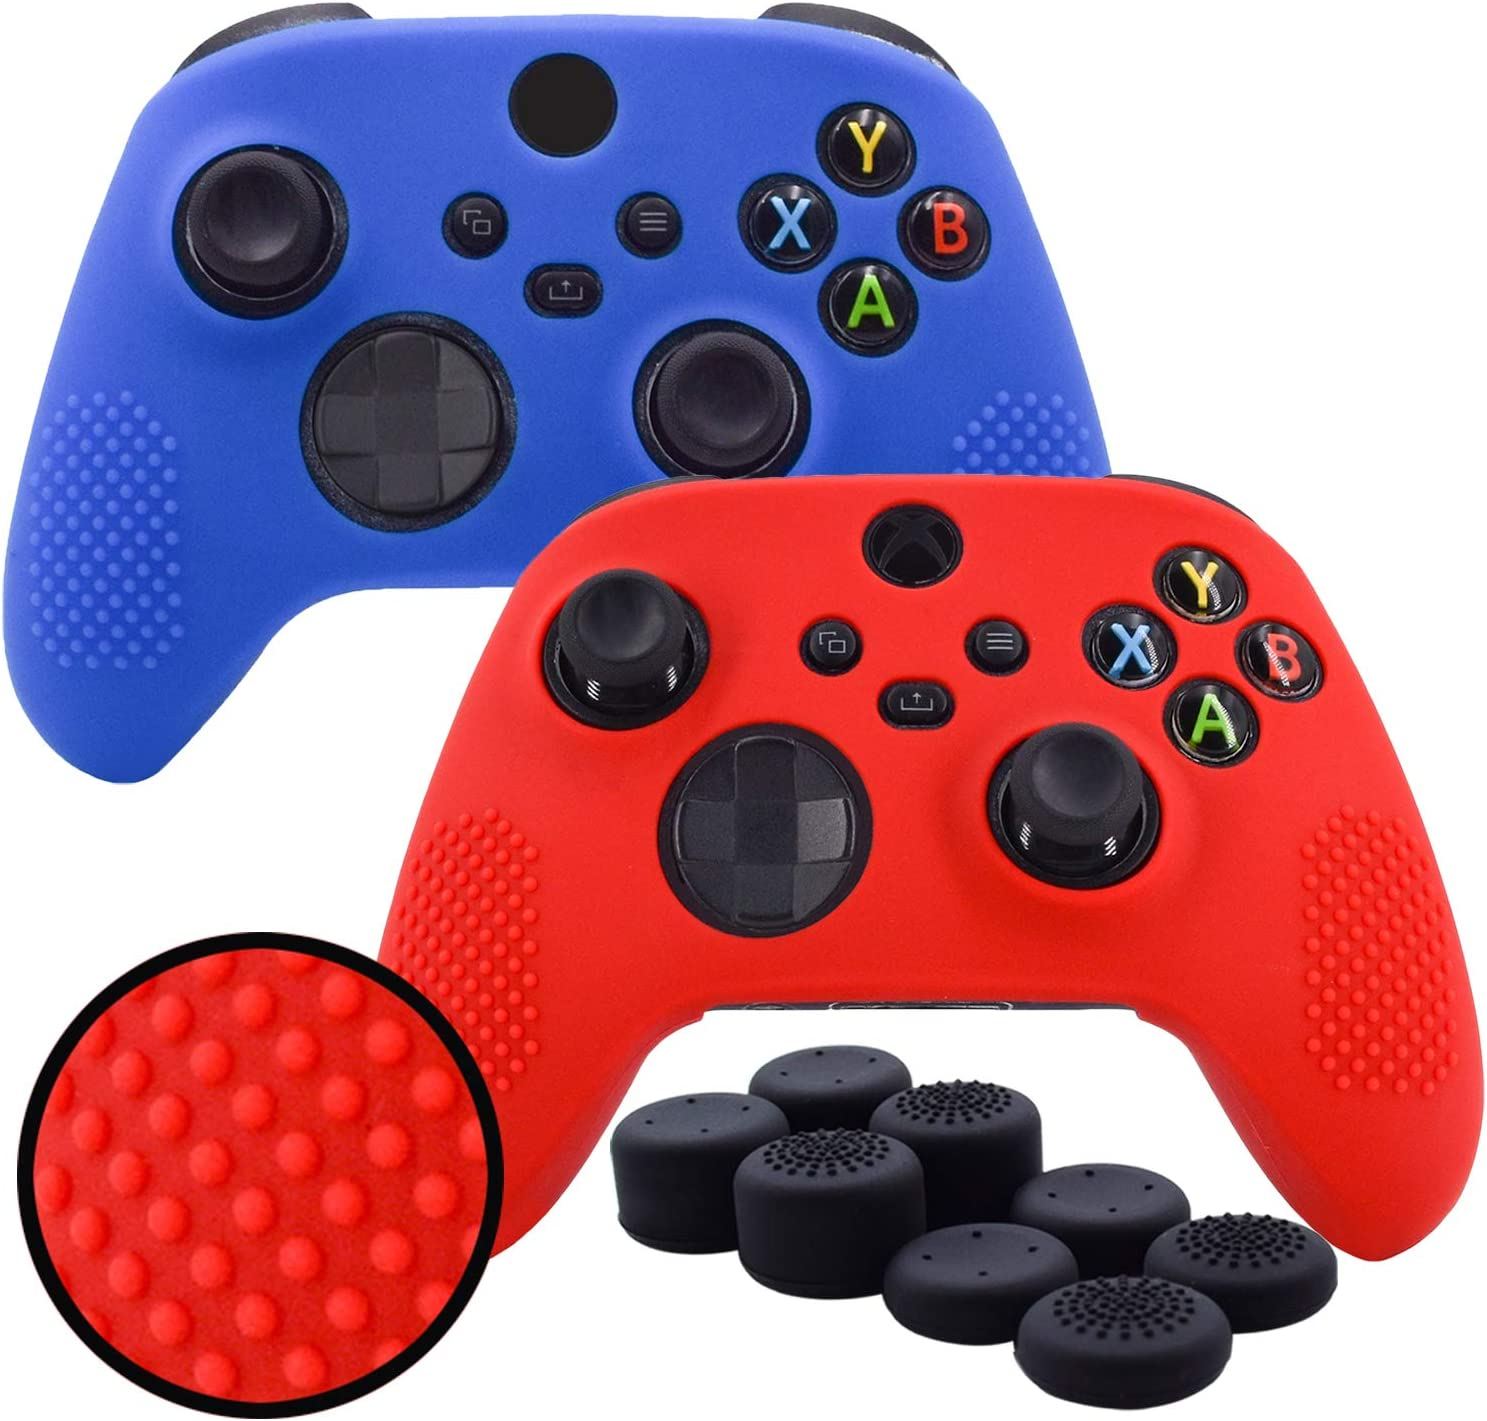 Pandaren/® Silicone Rubber Cover Skin Case Anti-Slip Water Transfer Customize Digital Camouflage for Xbox One//S//X Controller x 1 FPS PRO extra height thumb grips x 8 Orange